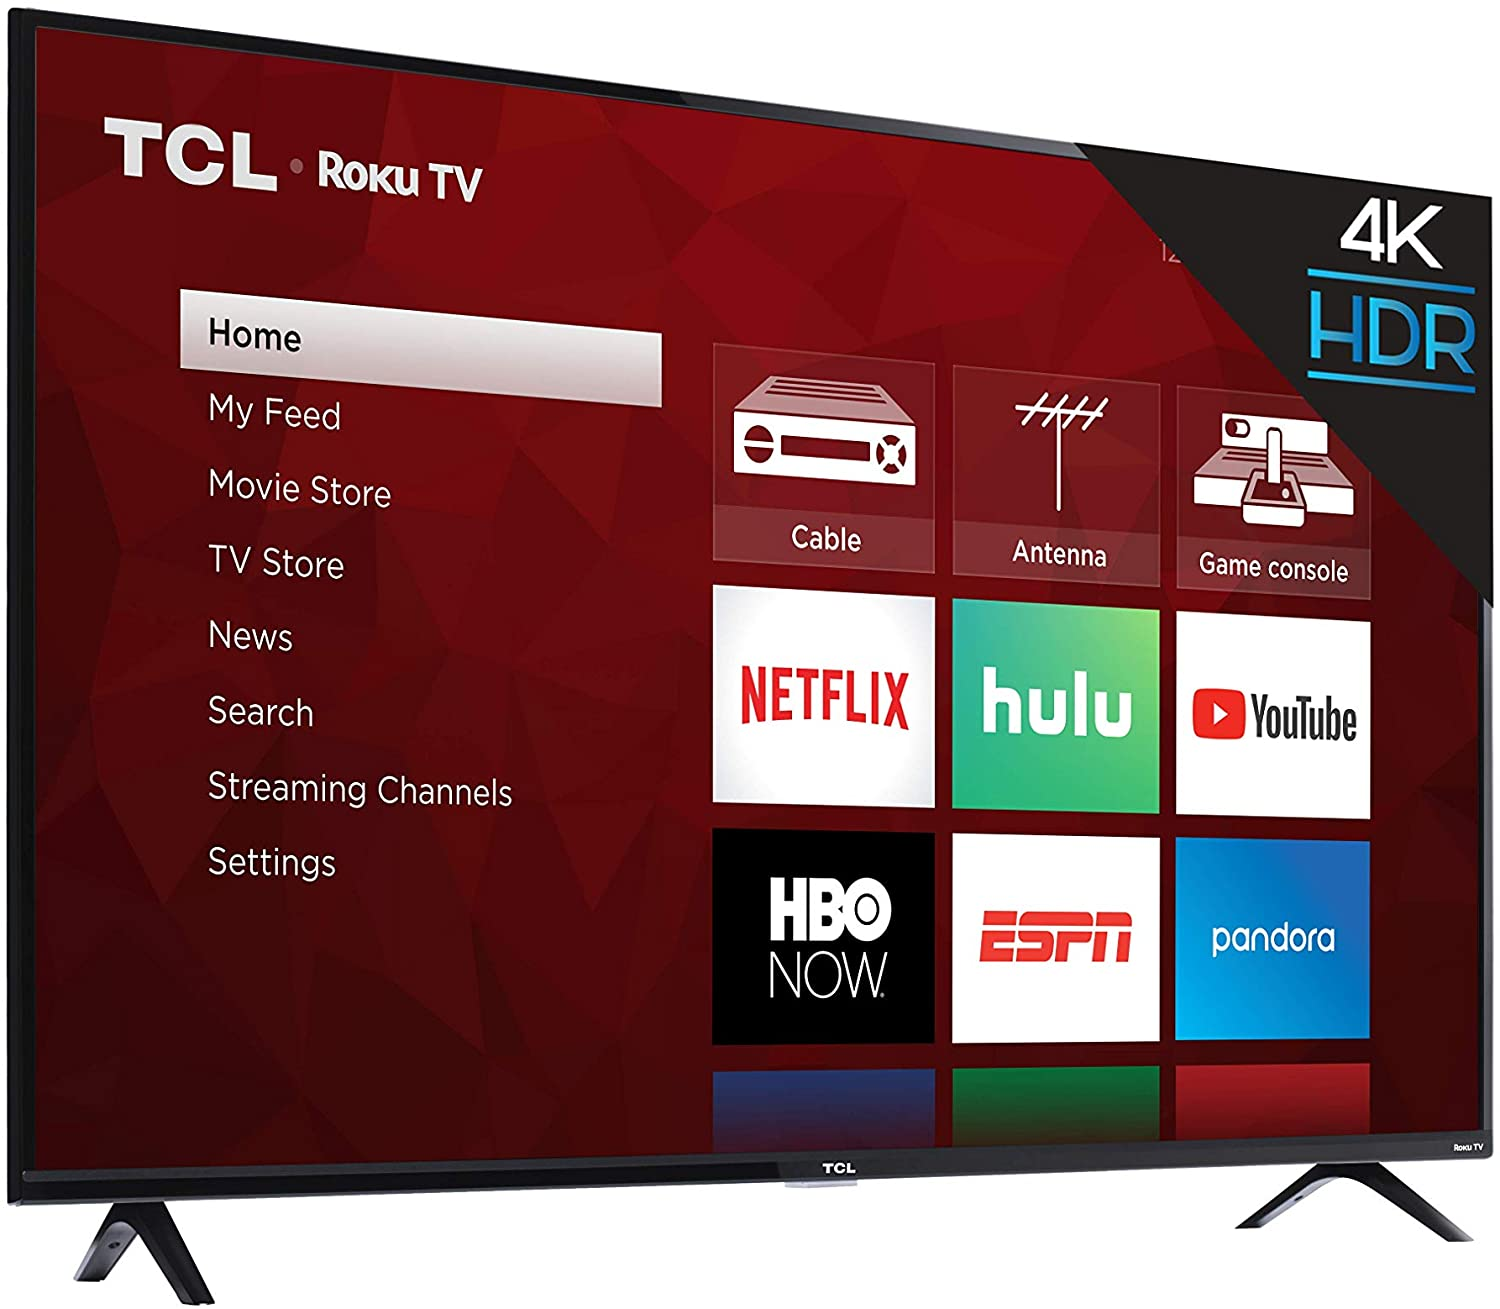 TCL 55S425 angle view top deal trading